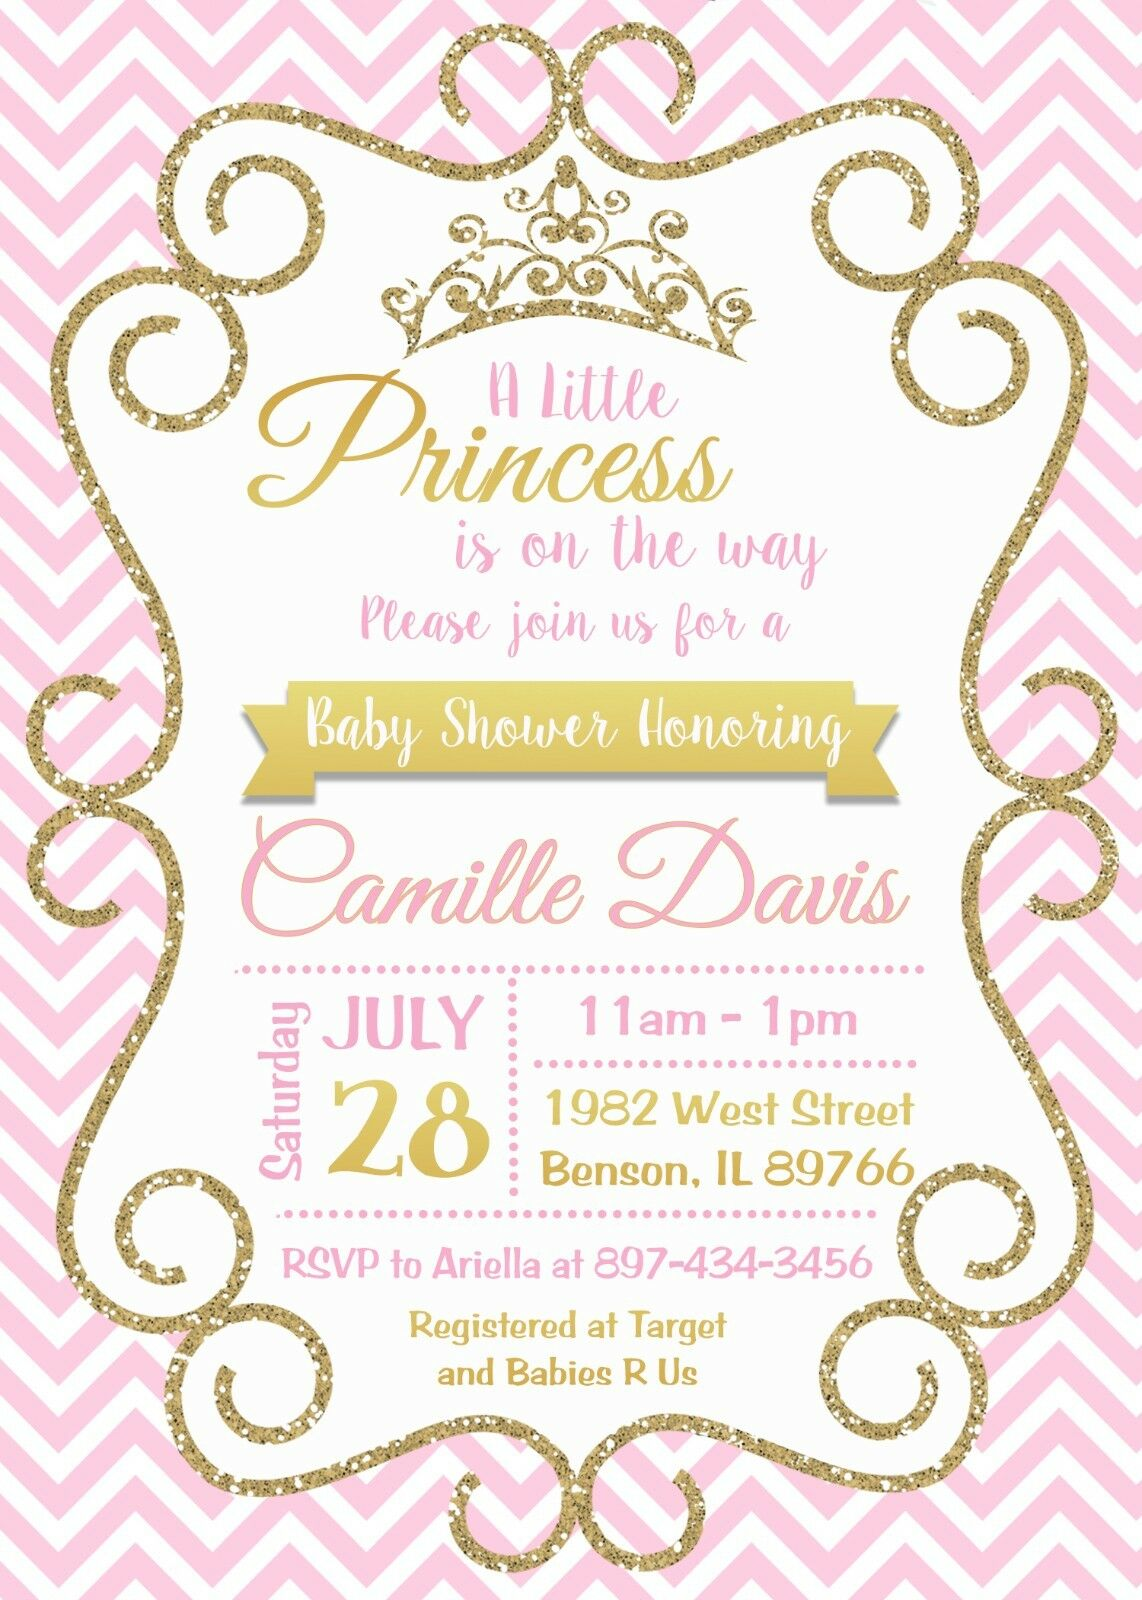 Princess baby shower pink baby shower invitation princess princess baby shower pink baby shower invitation princess invitation 1 of 1free shipping see more filmwisefo